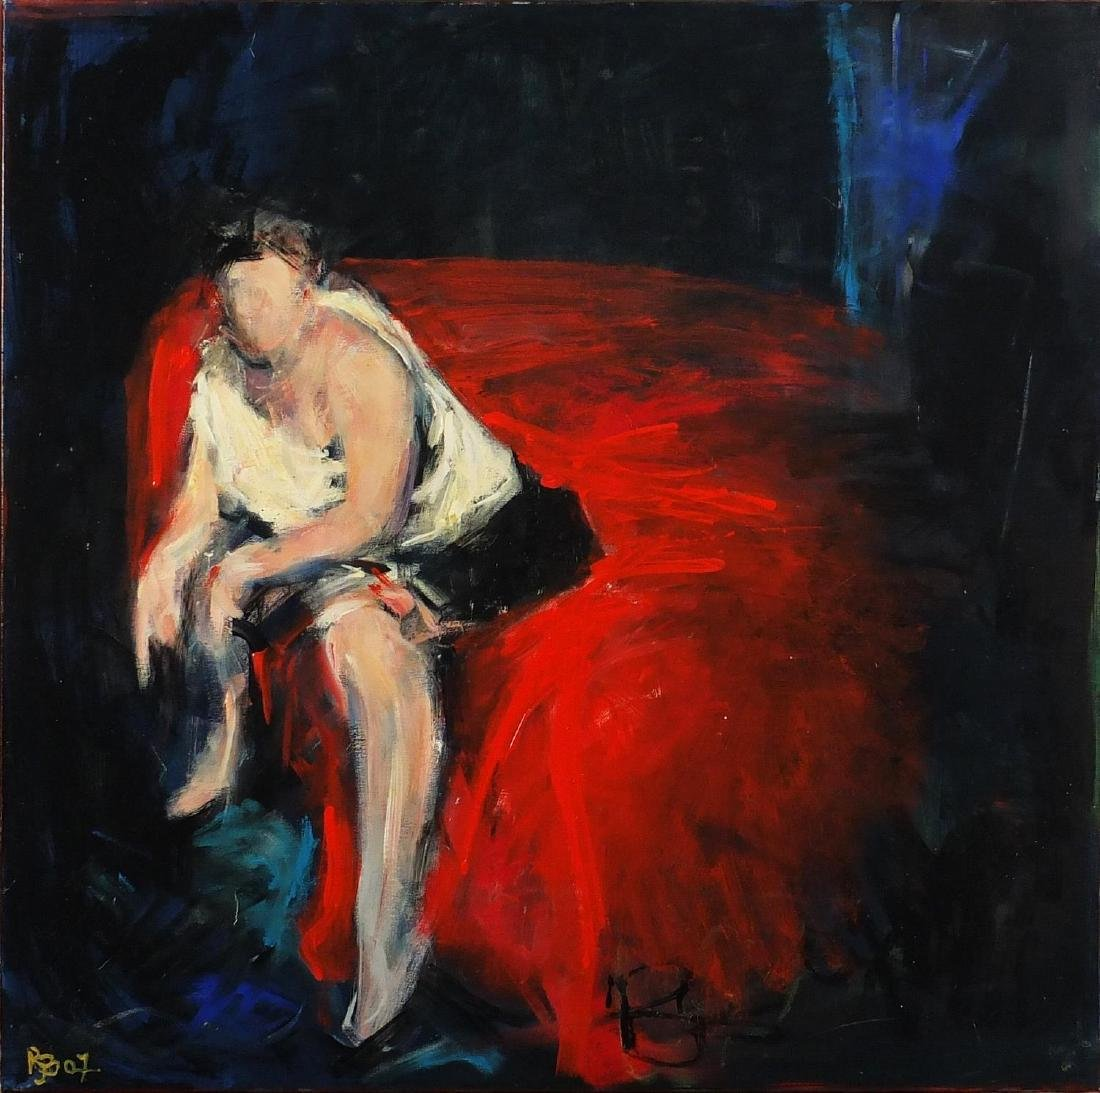 Richard Brown - Male prostitute, oil on canvas, framed, 80cm x 80cm